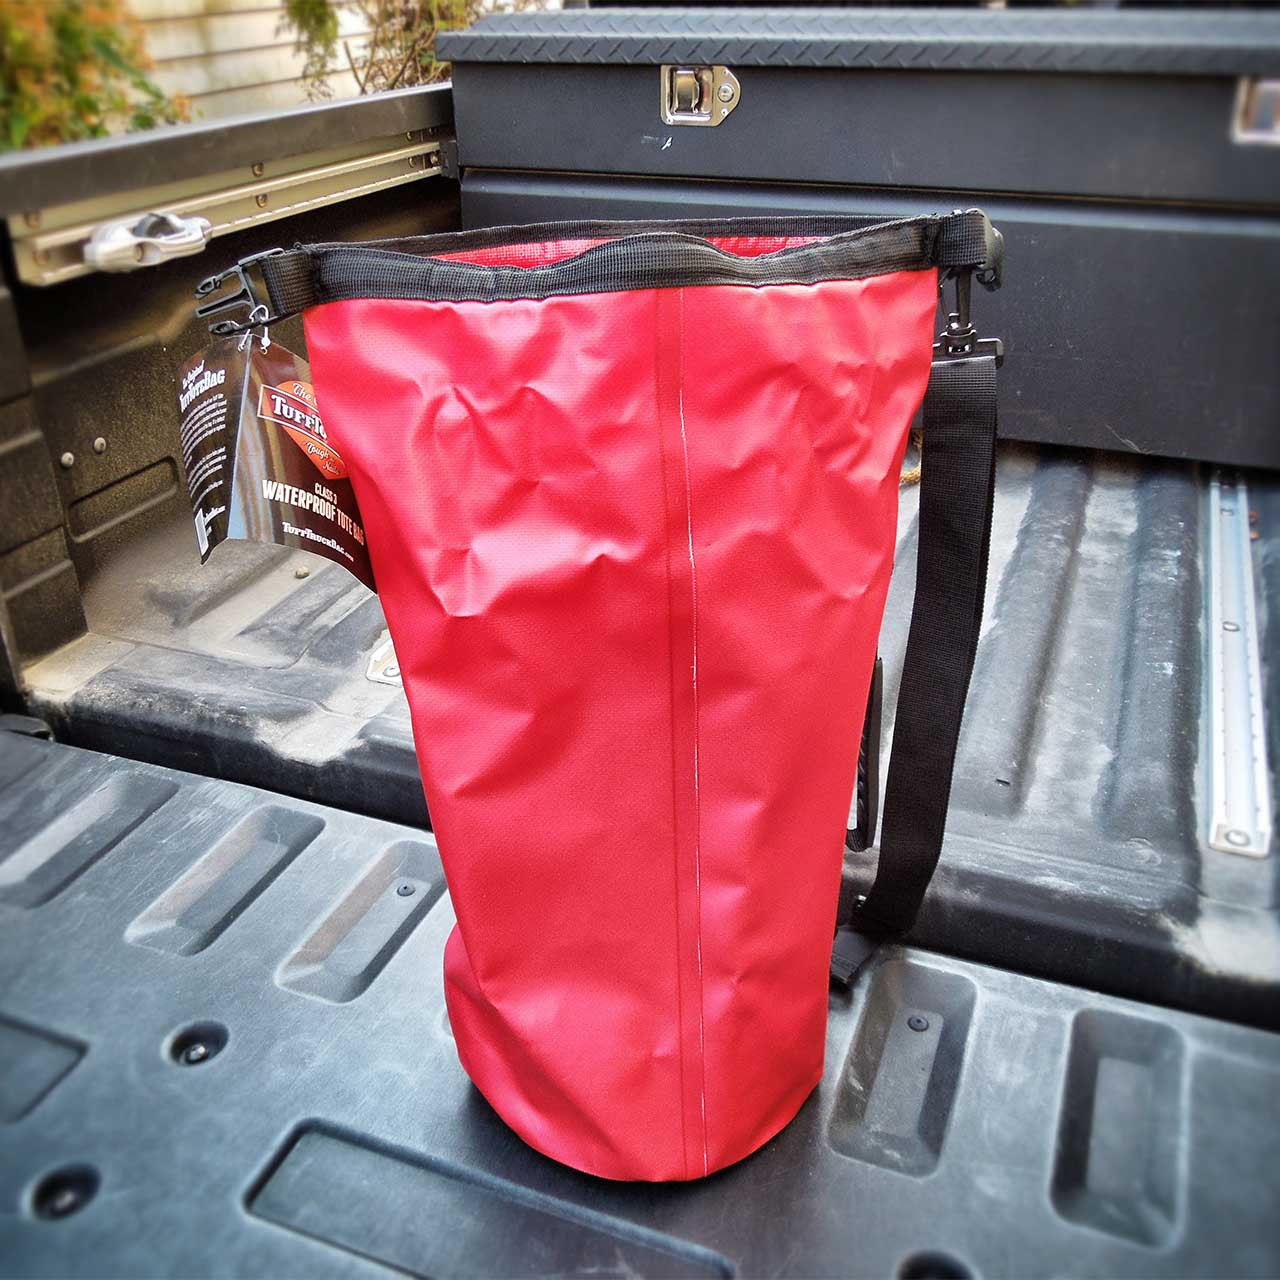 Back view of the red class three waterproof dry bag.